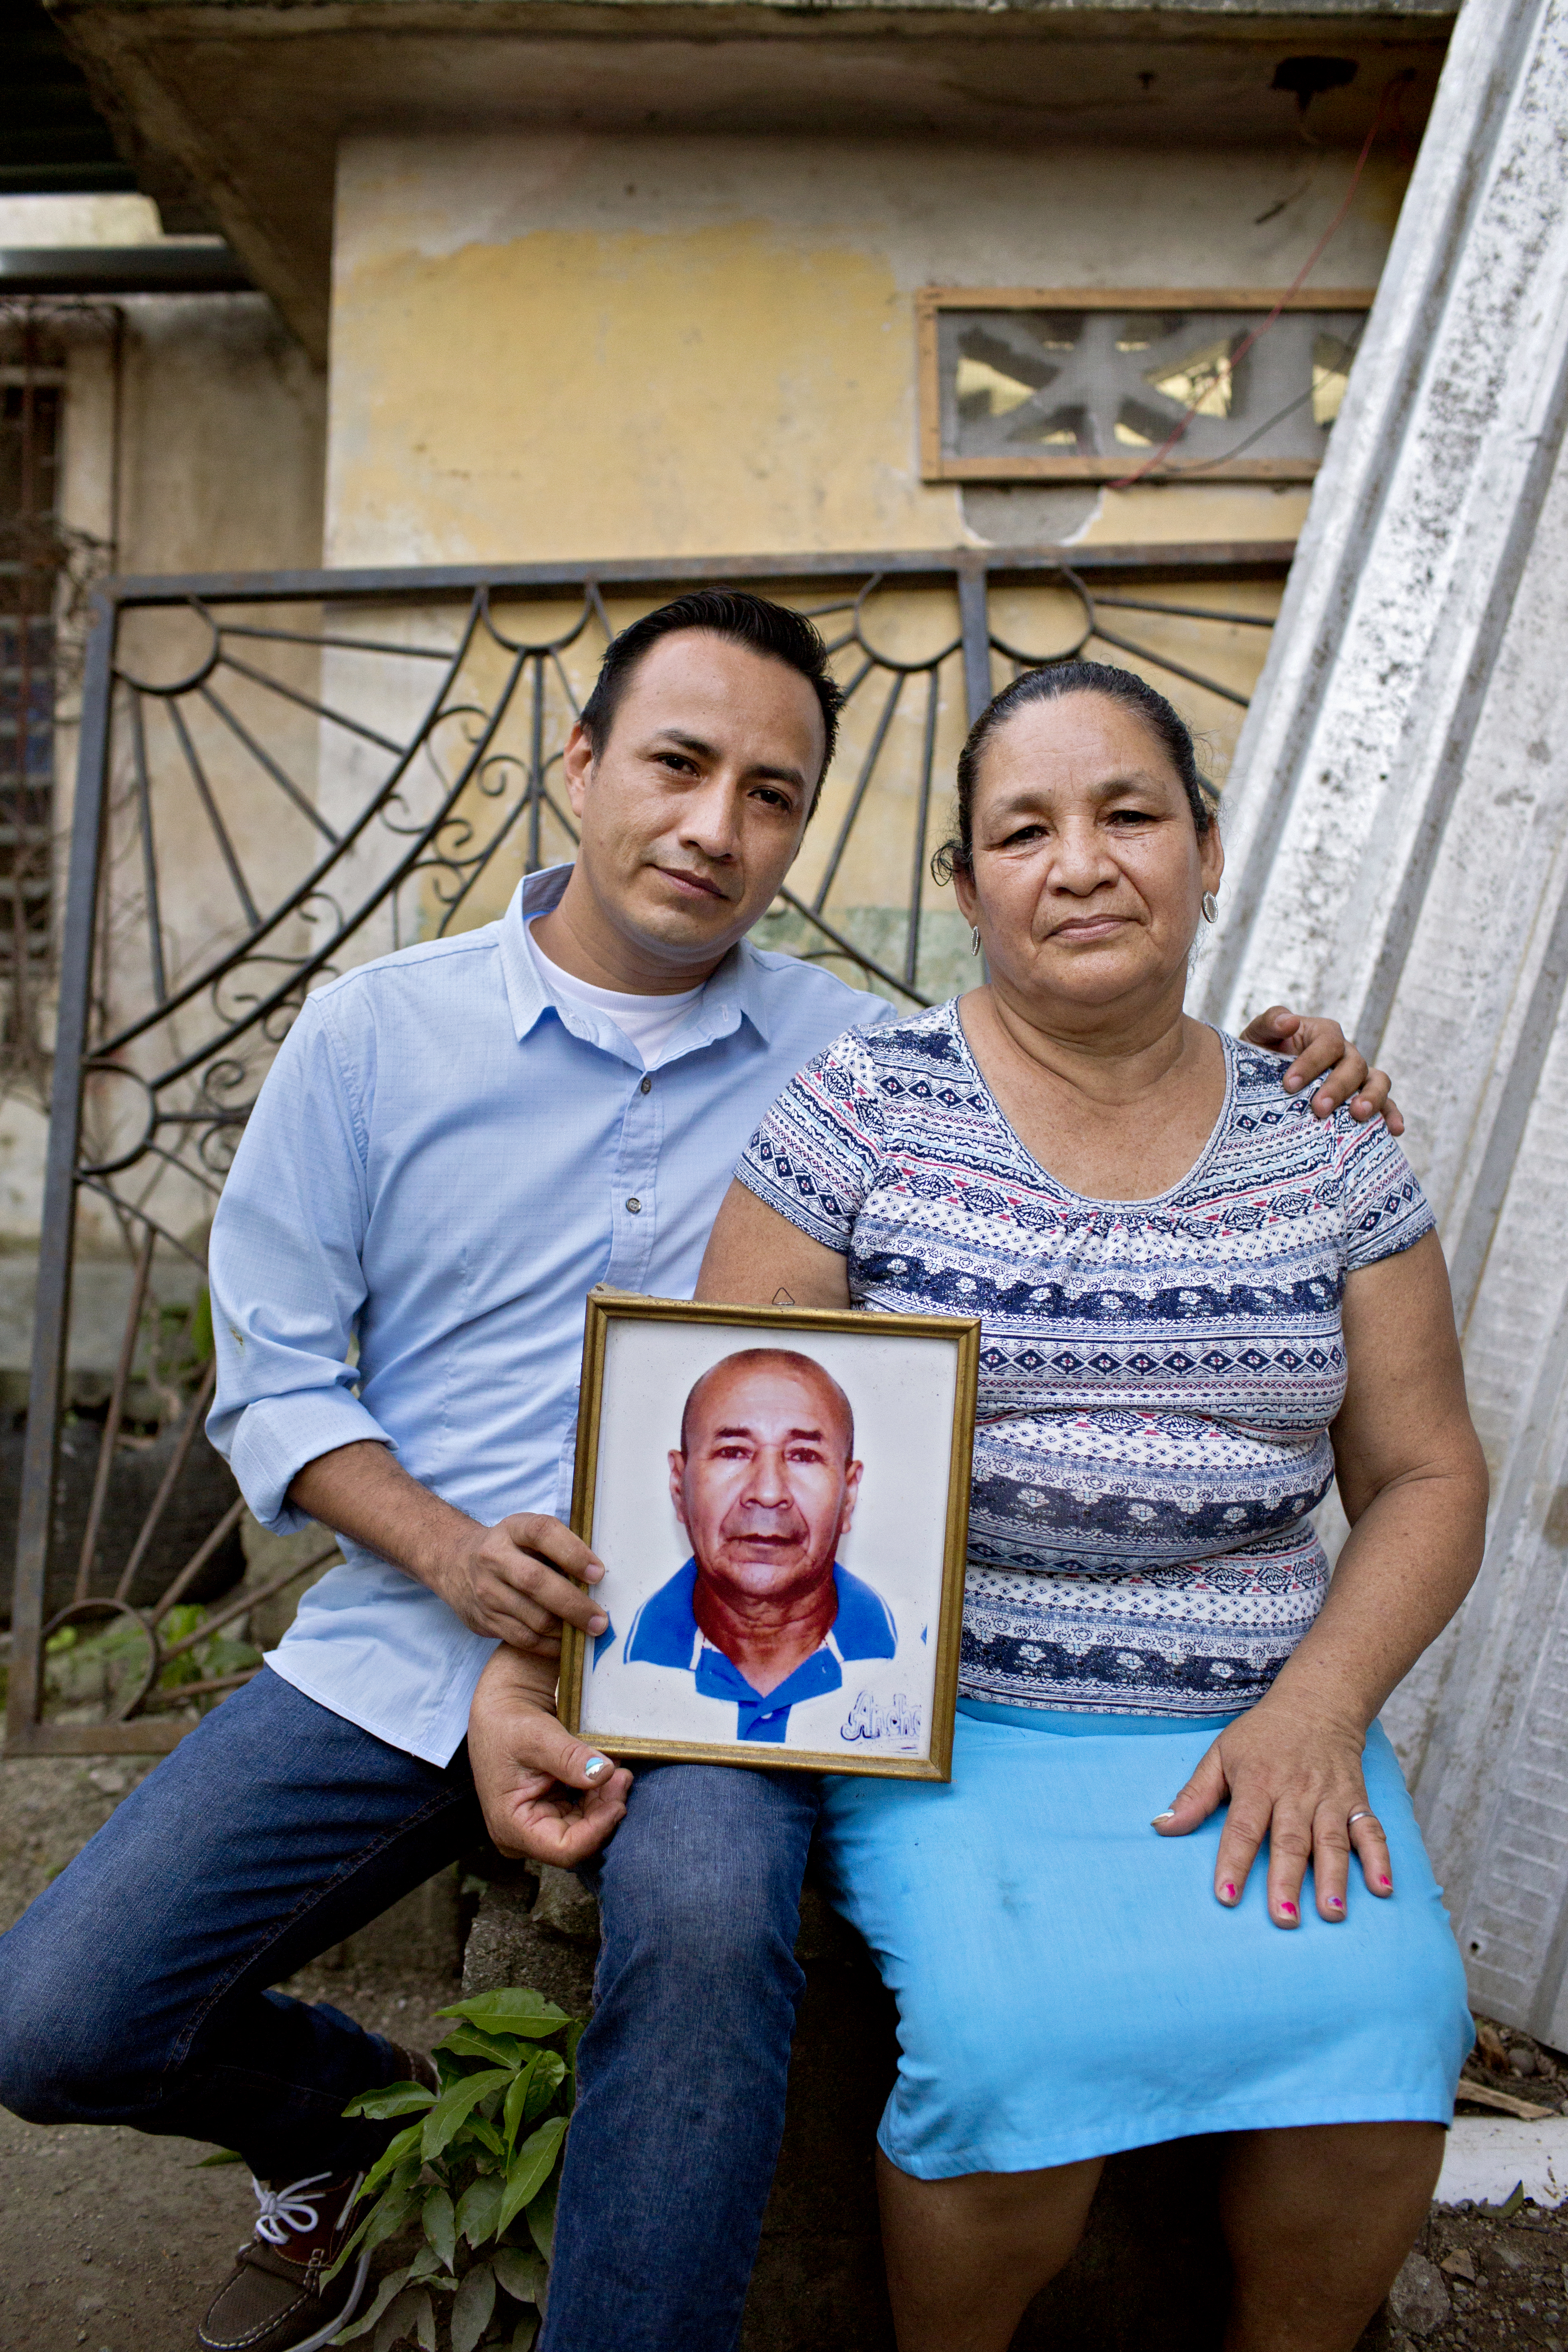 Ángel Lenin Flores and his mother hold a photo of José Ángel, a campesino leader murdered by a paramilitary band that has cropped up in a battle for land between campesino cooperatives and wealthy landowners in the Bajo Aguán region of Honduras